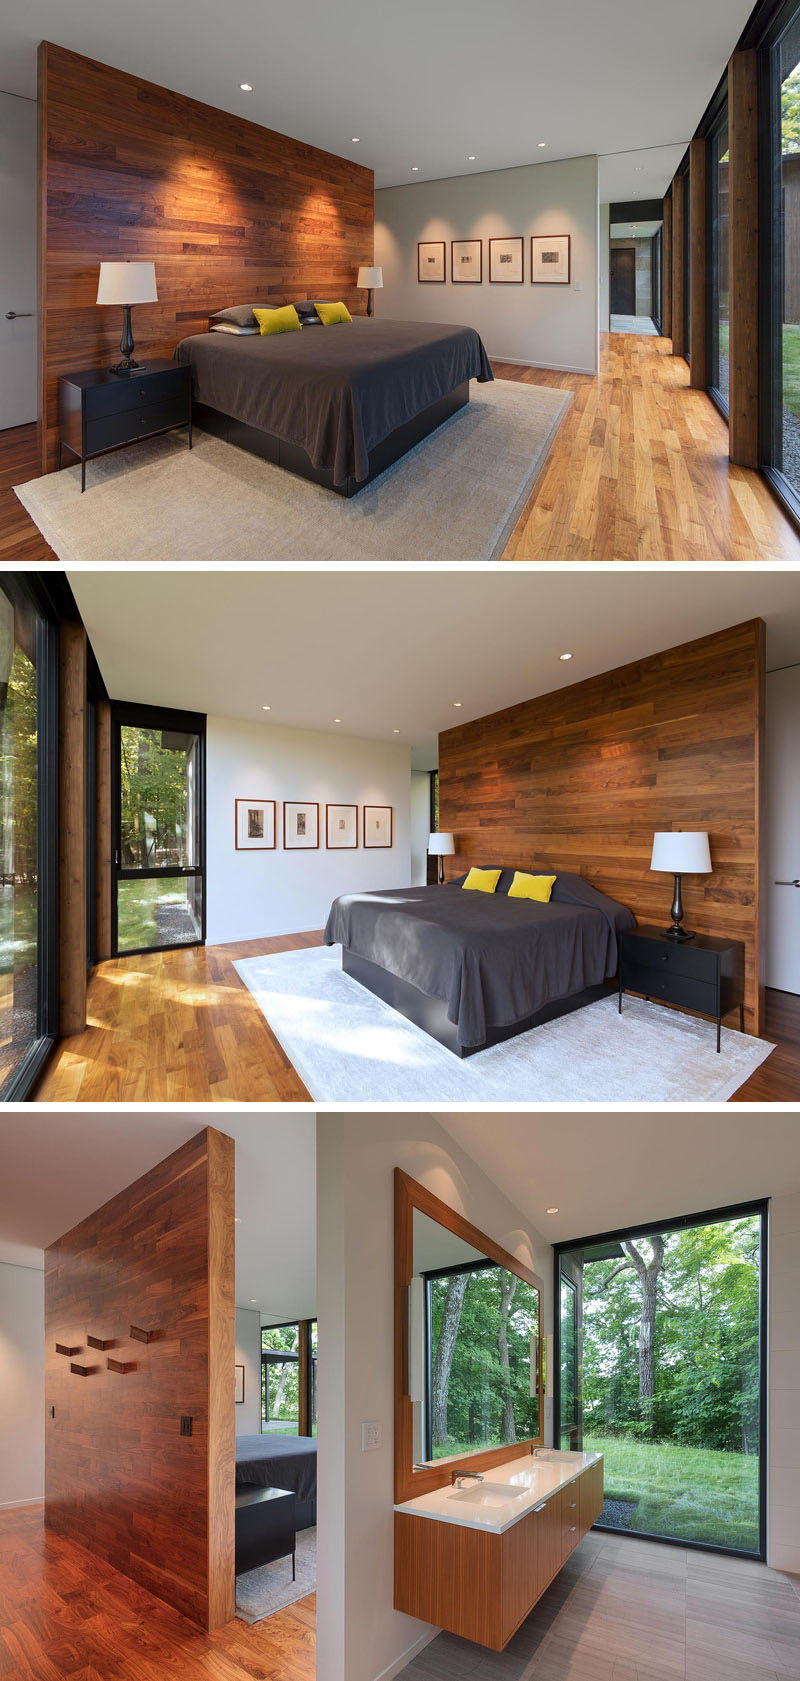 In this modern master bedroom, there's a wood accent wall that also acts as a partition, and behind it are coat hooks. Off to the side of the bedroom is the master bathroom that features a large window with tree views. #MasterBedroom #MasterBathroom